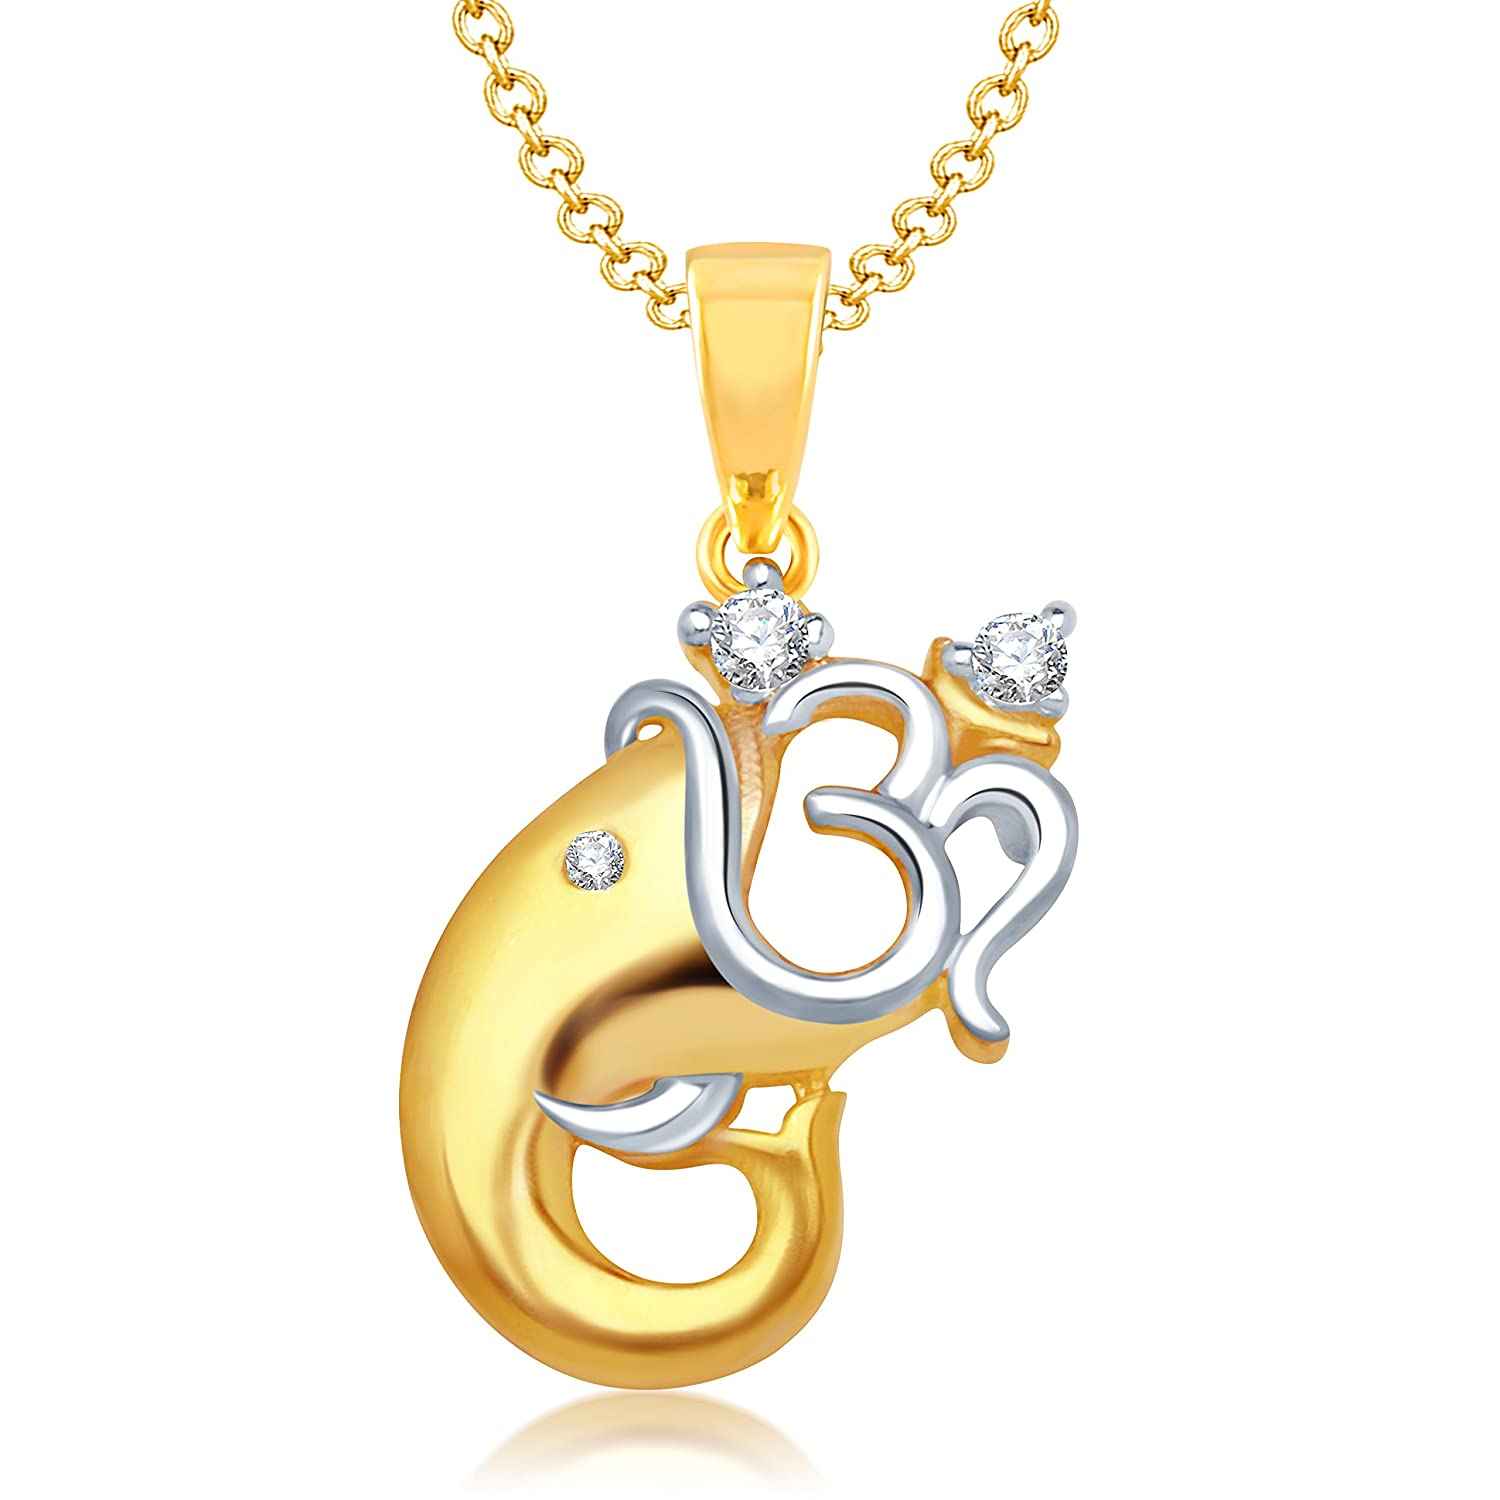 Buy vk jewels om vakratund gold and rhodium plated alloy god buy vk jewels om vakratund gold and rhodium plated alloy god pendant for men women made with cubic zirconia p1128g vkp1128g online at low prices in mozeypictures